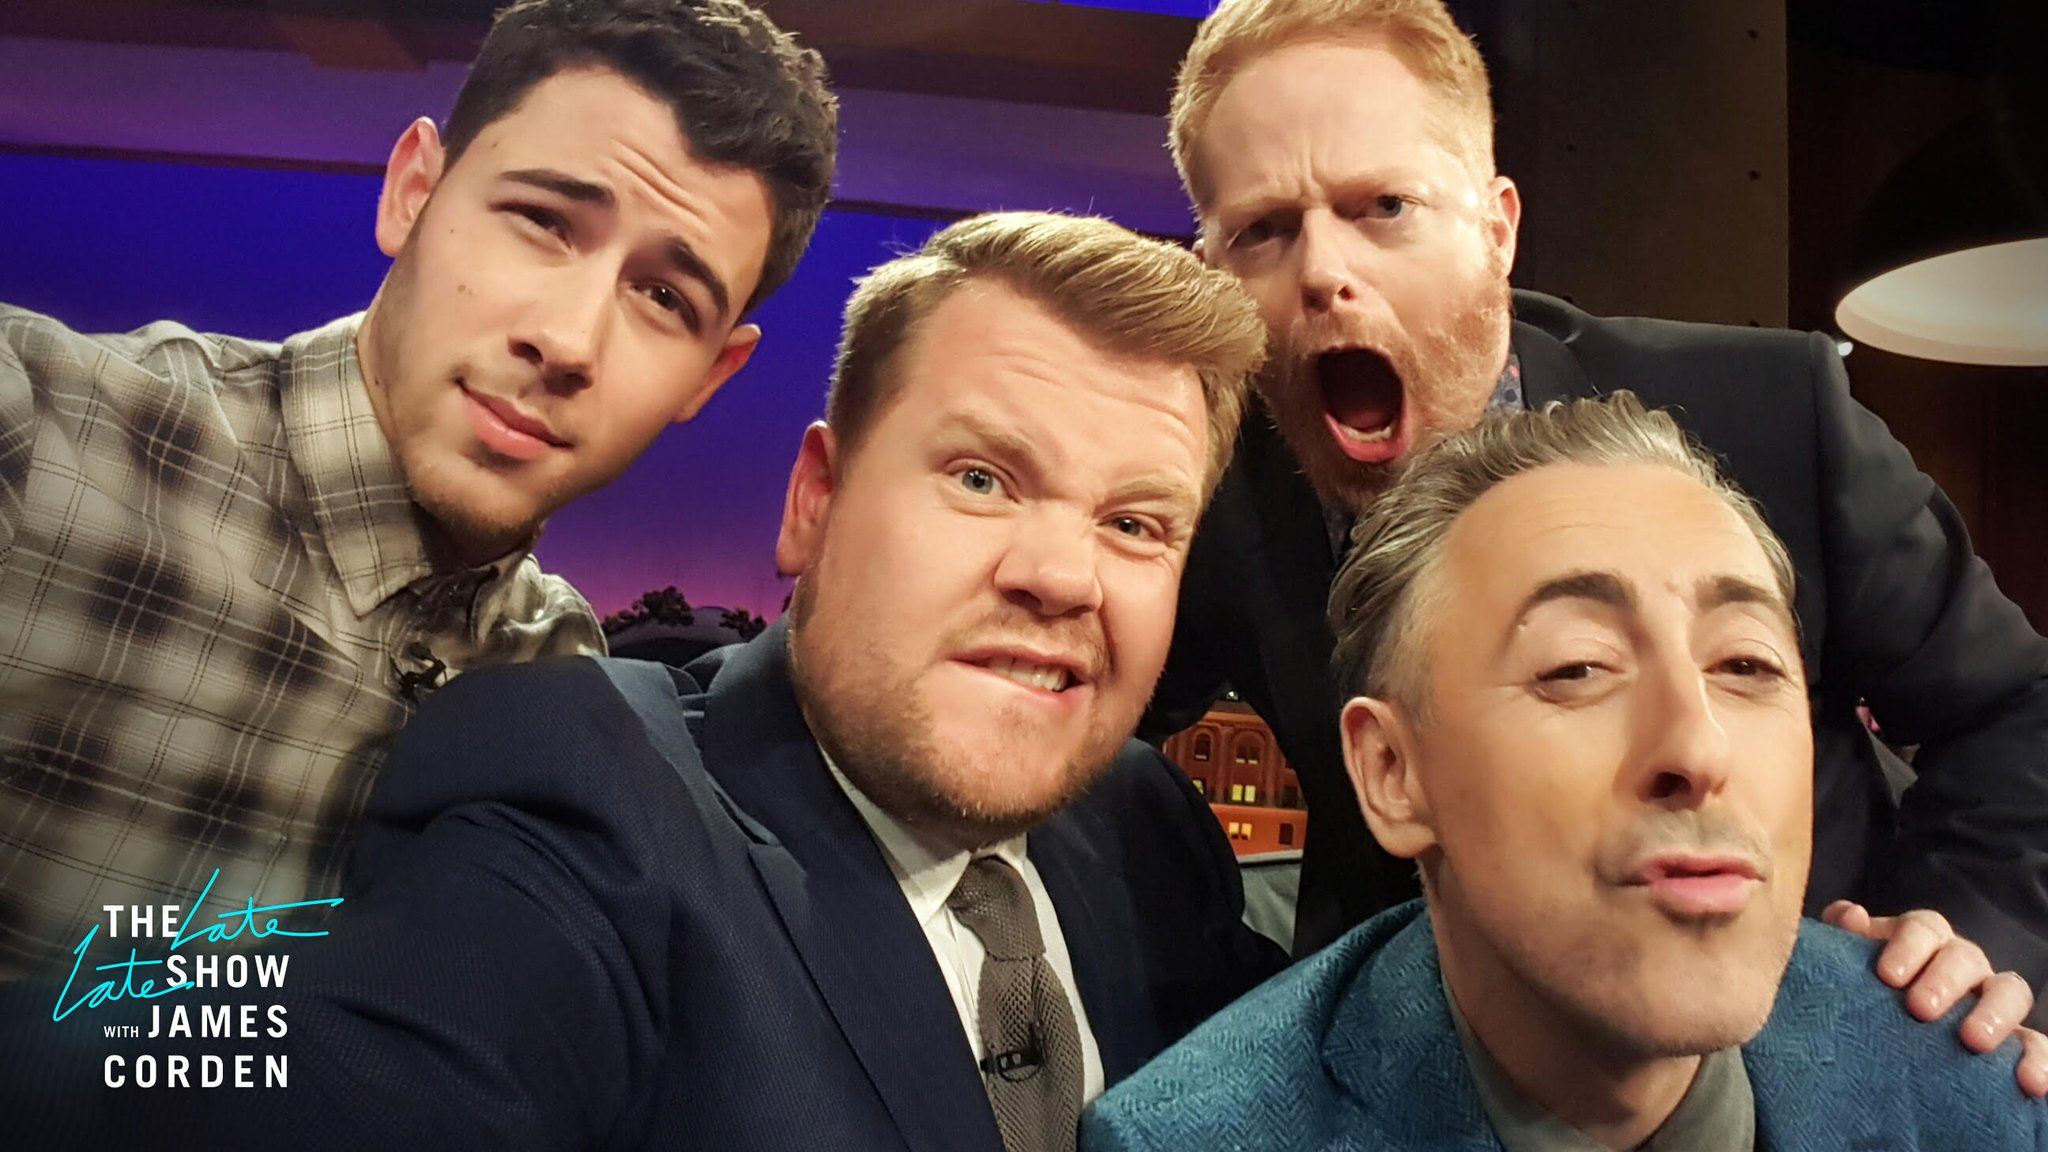 Stoked to be performing #Bacon and hanging with @JKCorden on the @latelateshow tonight. Tune in 12:37/11:37c on CBS. https://t.co/Hrq371gqZf